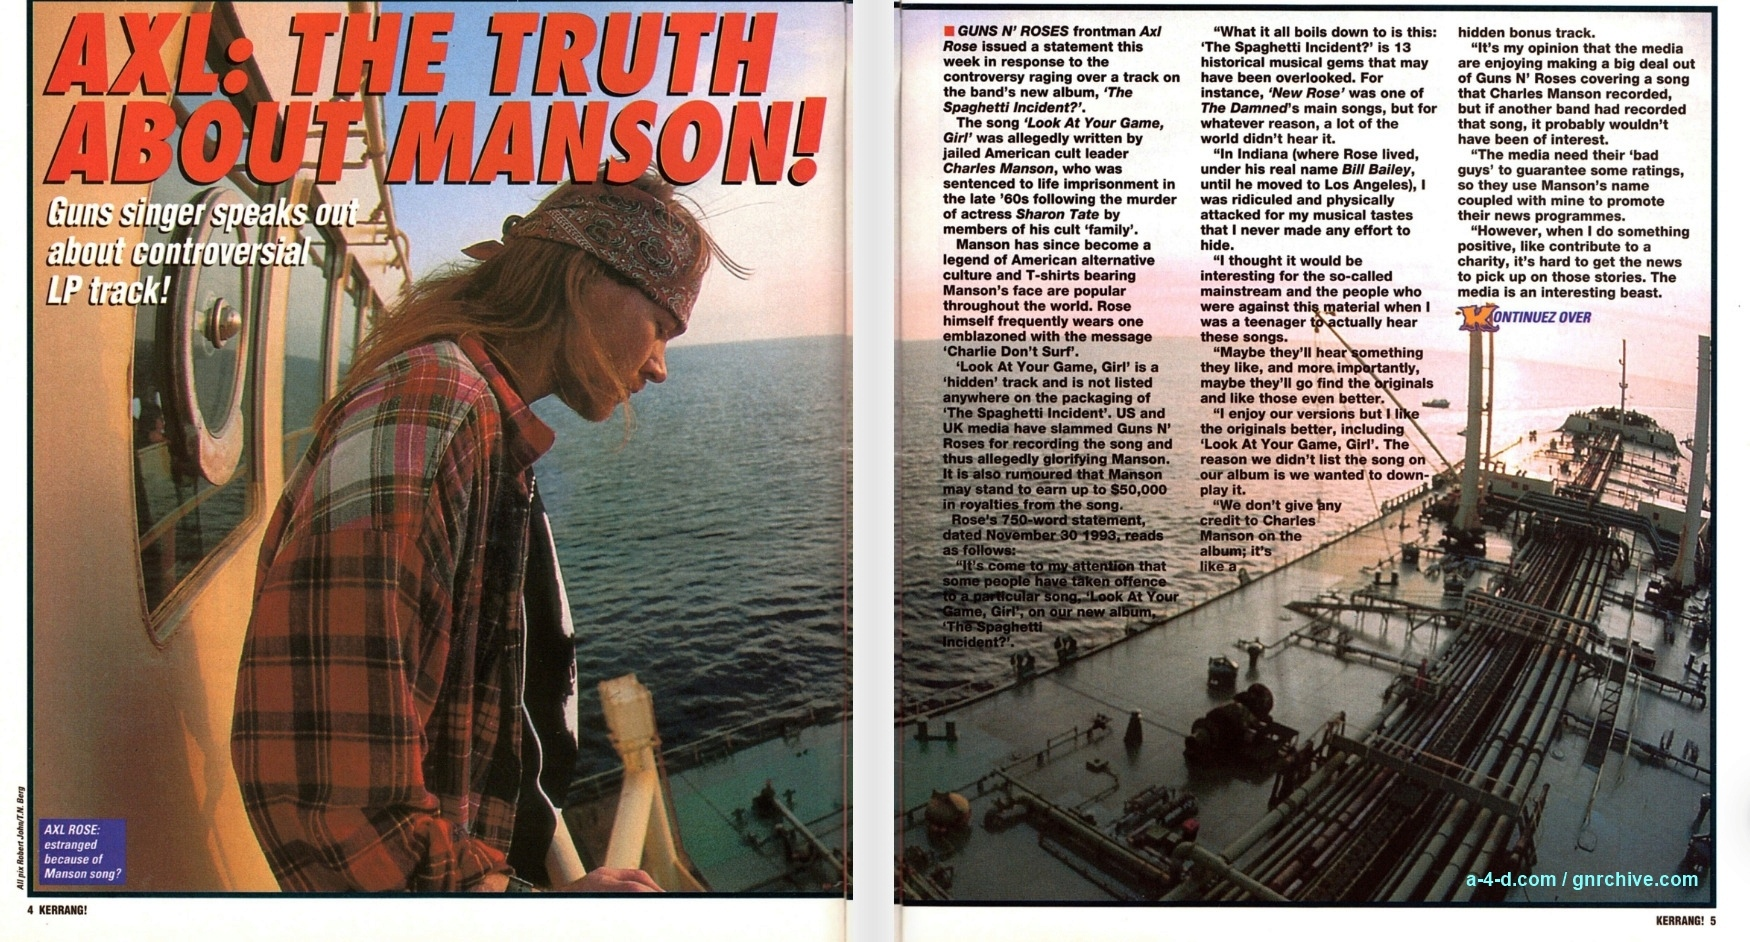 1993.12.11 - Kerrang! - Axl: The Truth About Manson 1993_187